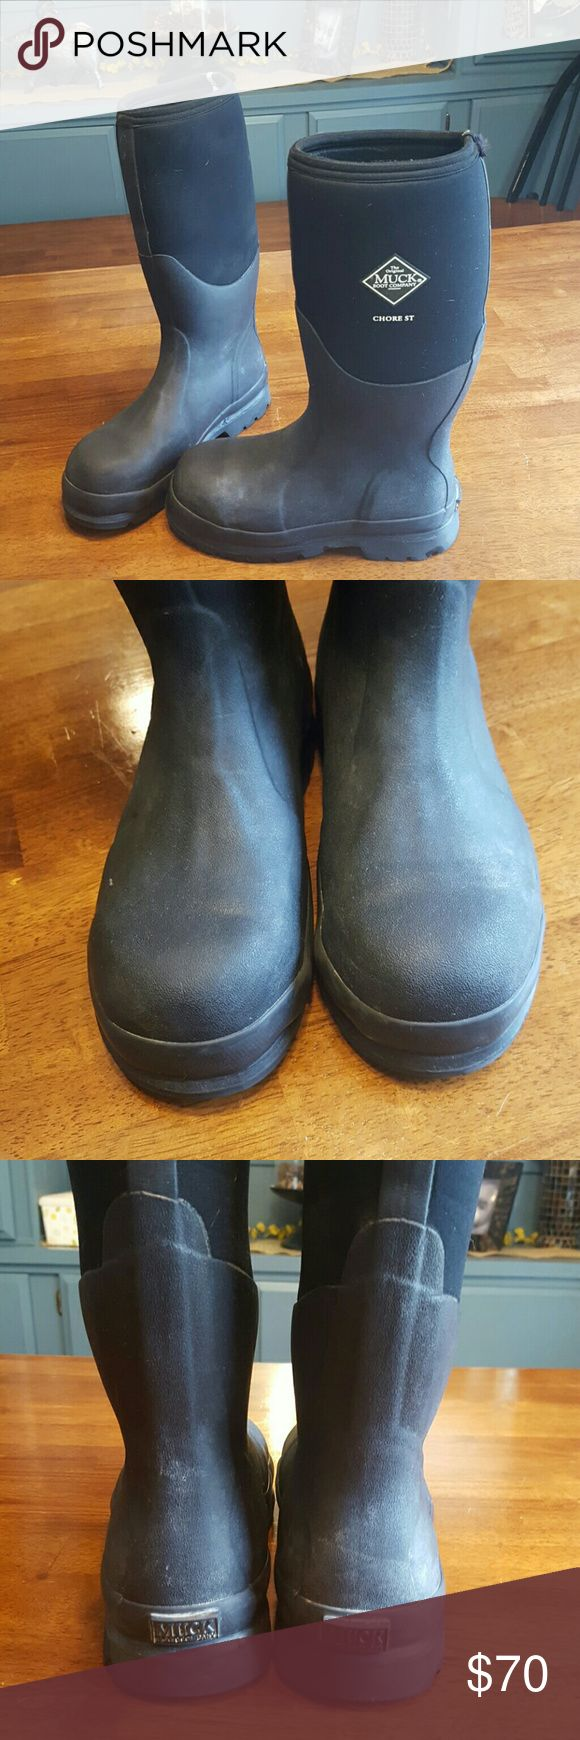 17 best ideas about Steel Toe Muck Boots on Pinterest | Muck boots ...